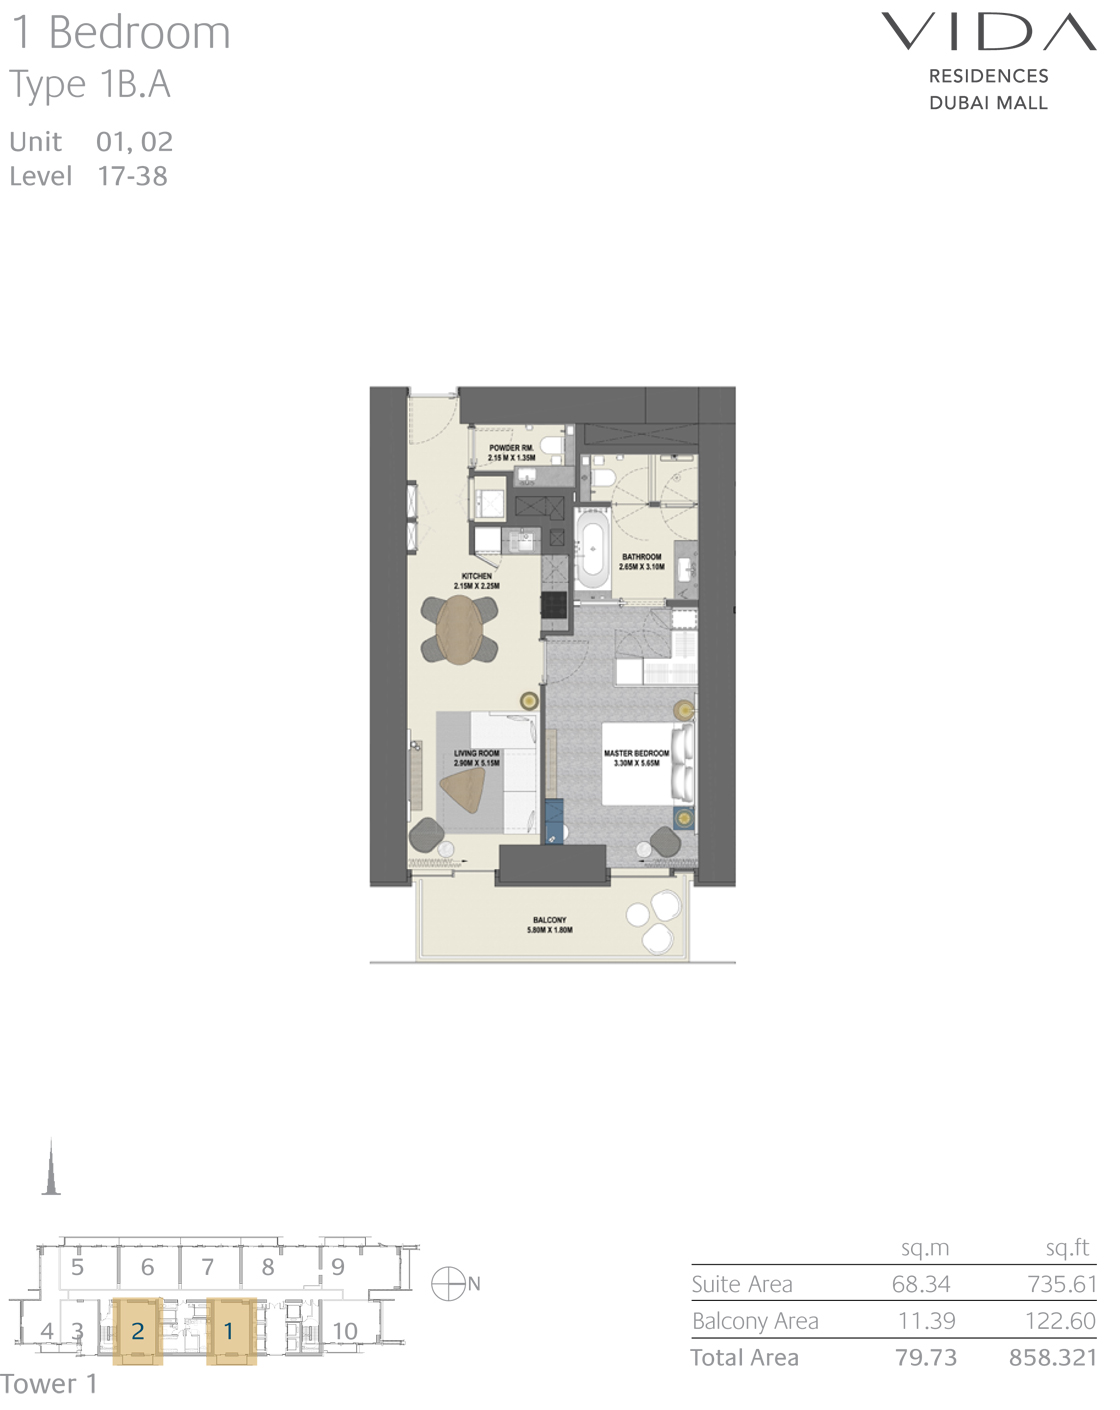 1 Bedroom Type 1B.A Unit 01, 02 Level 17-38